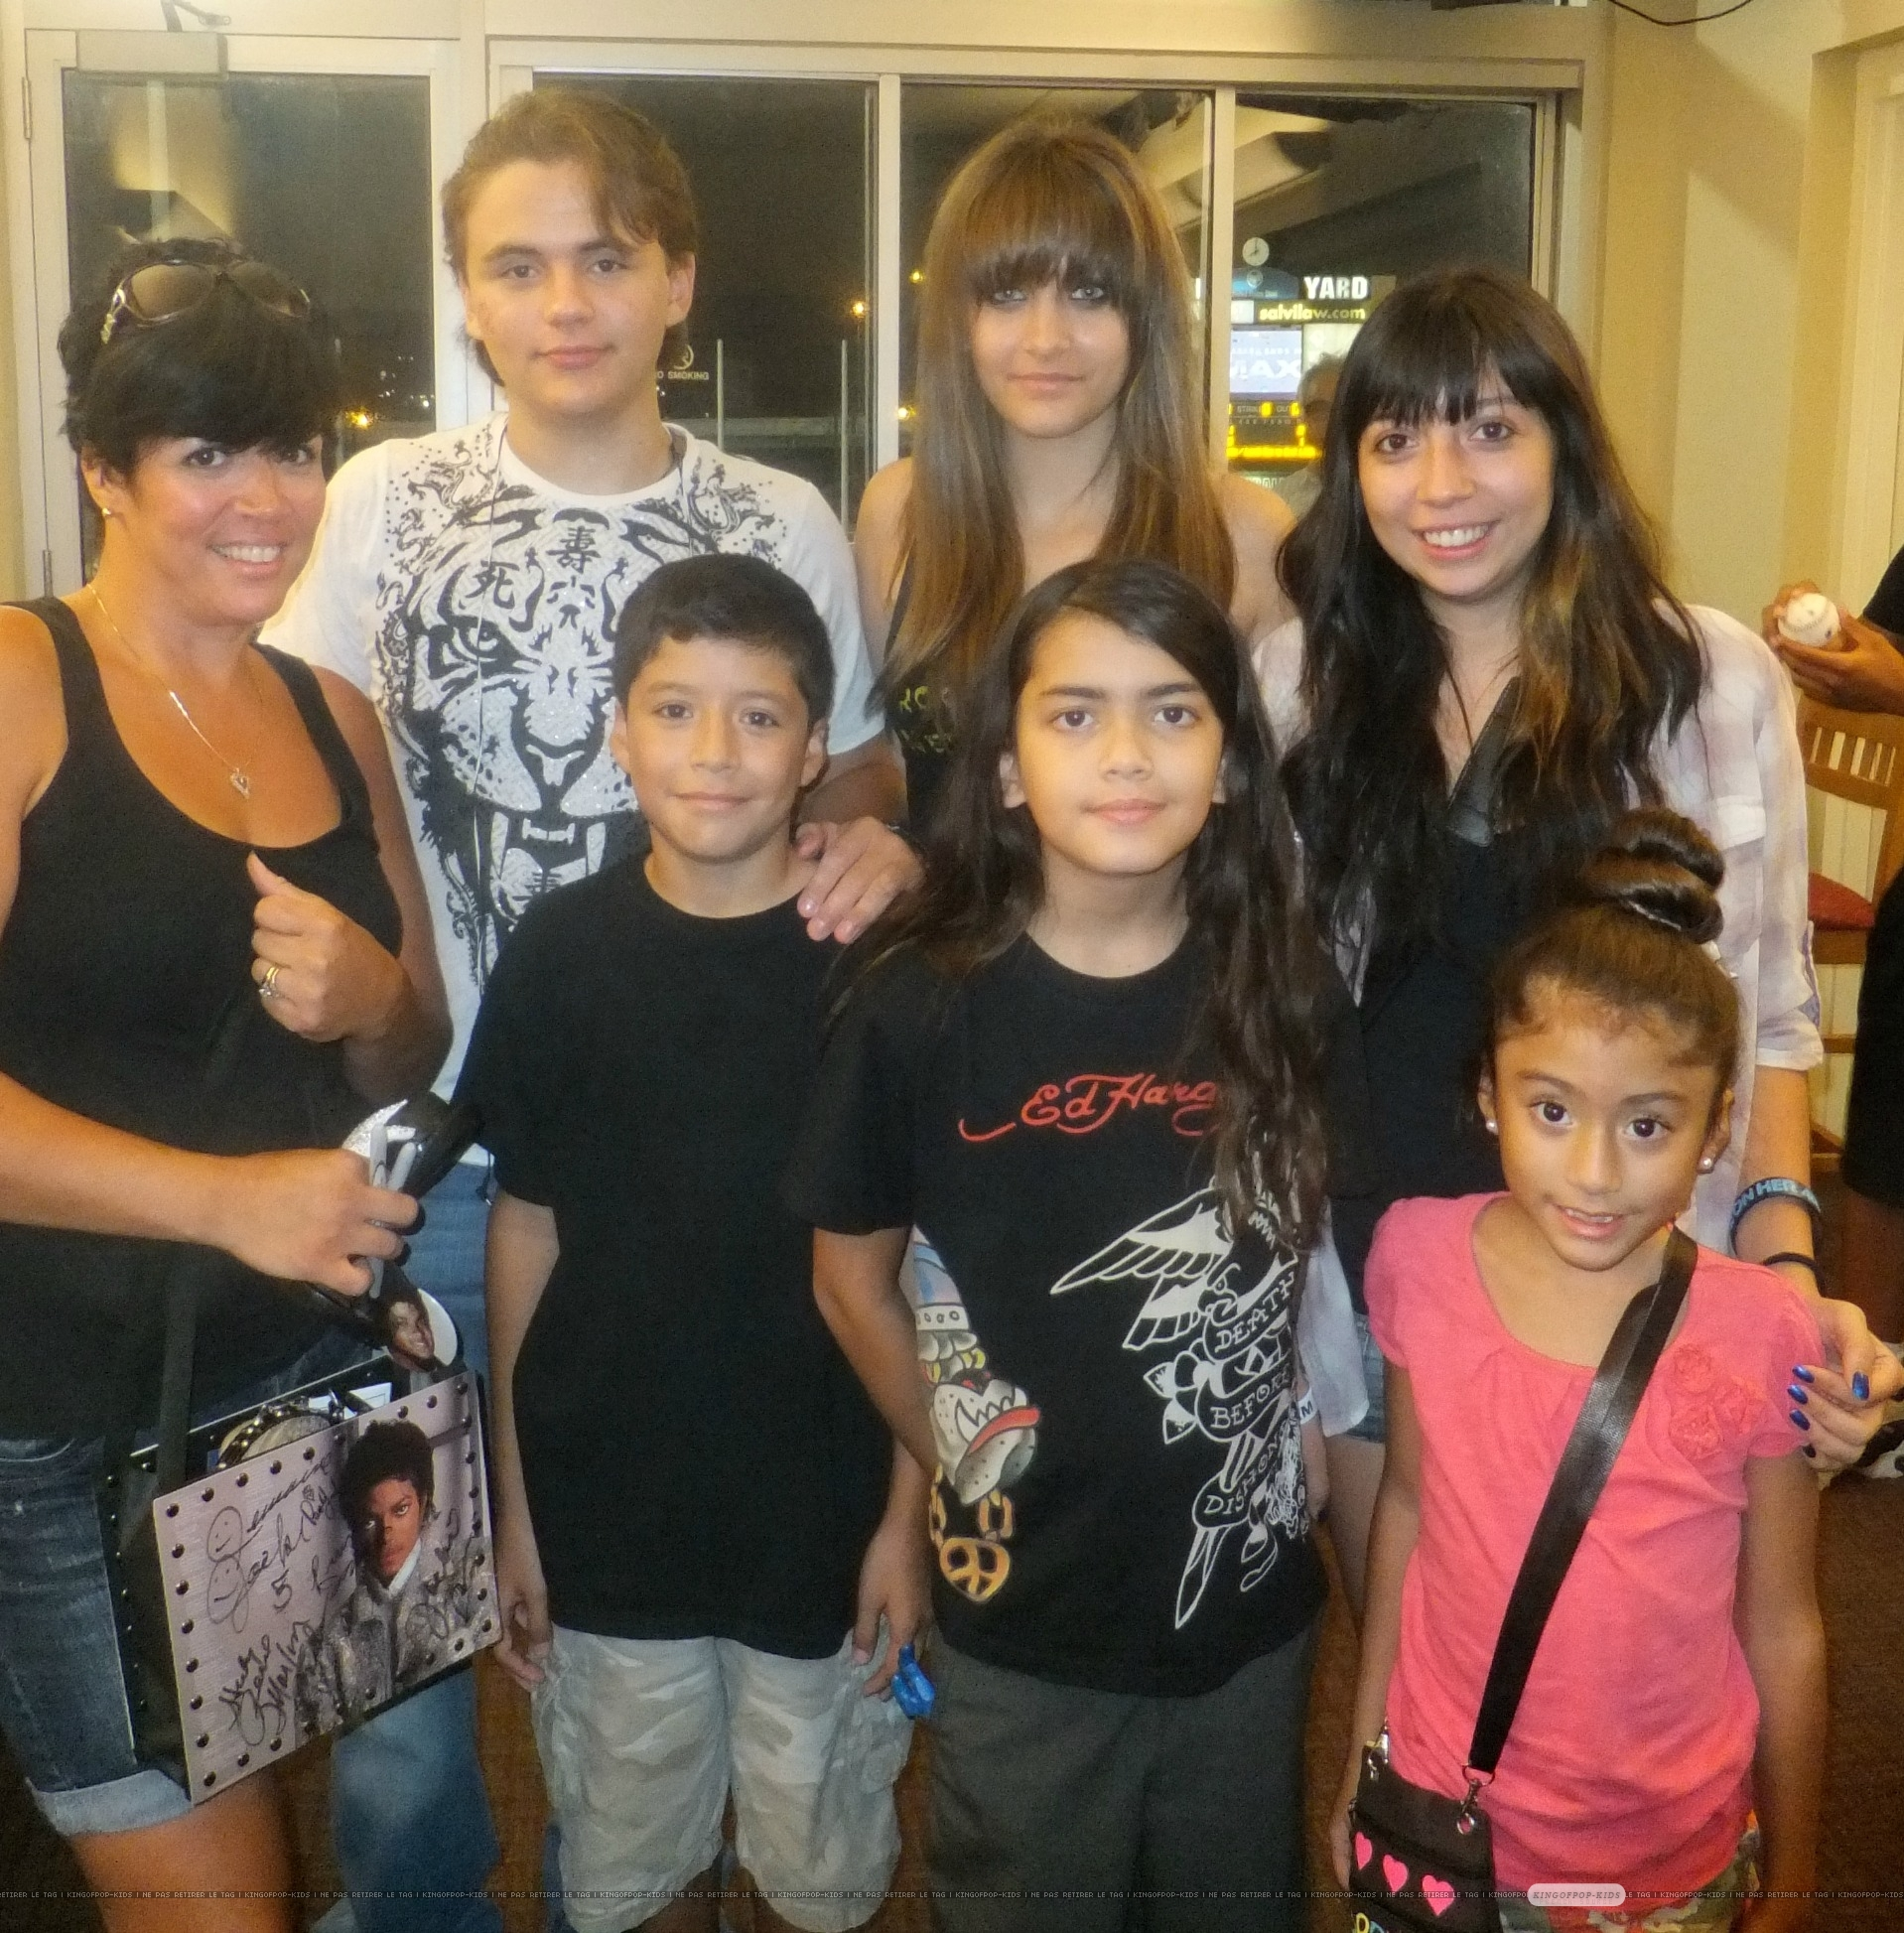 Prince Jackson, Paris Jackson and Blanket Jackson with fans in Gary, Indiana ♥♥